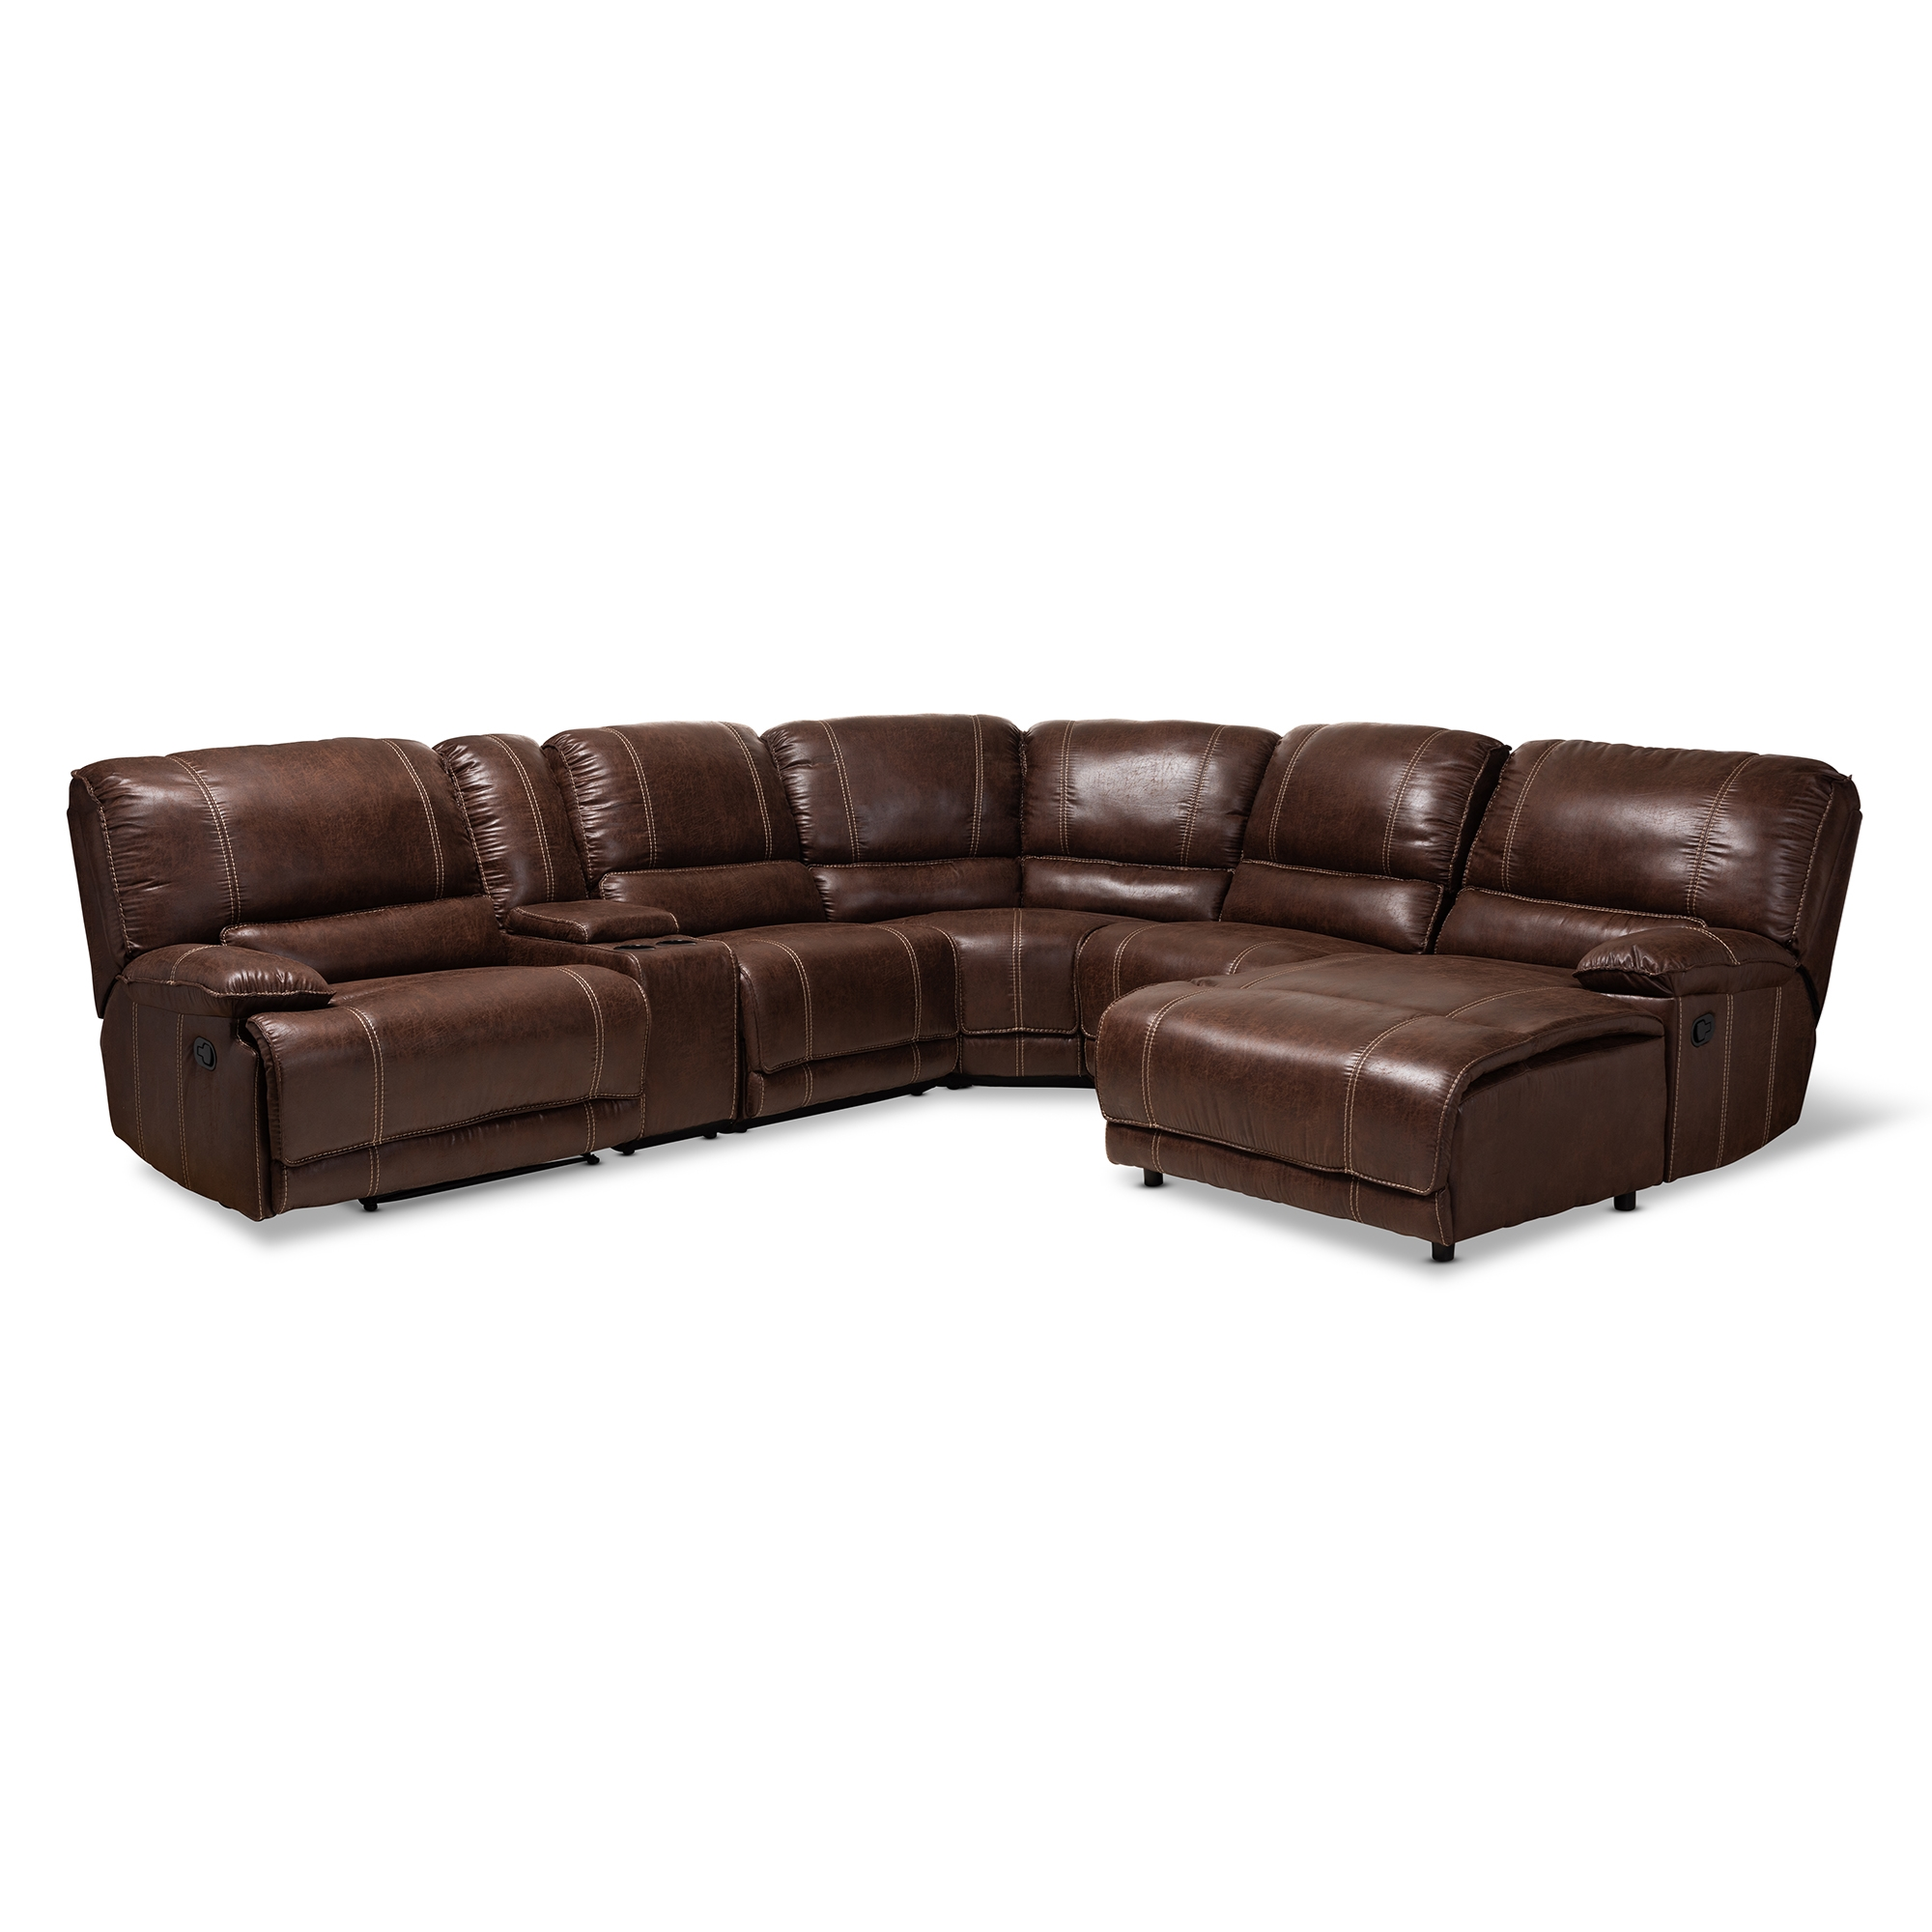 Baxton Studio Salomo Modern And Contemporary Brown Faux Leather Upholstered  6 Piece Sectional Recliner Sofa